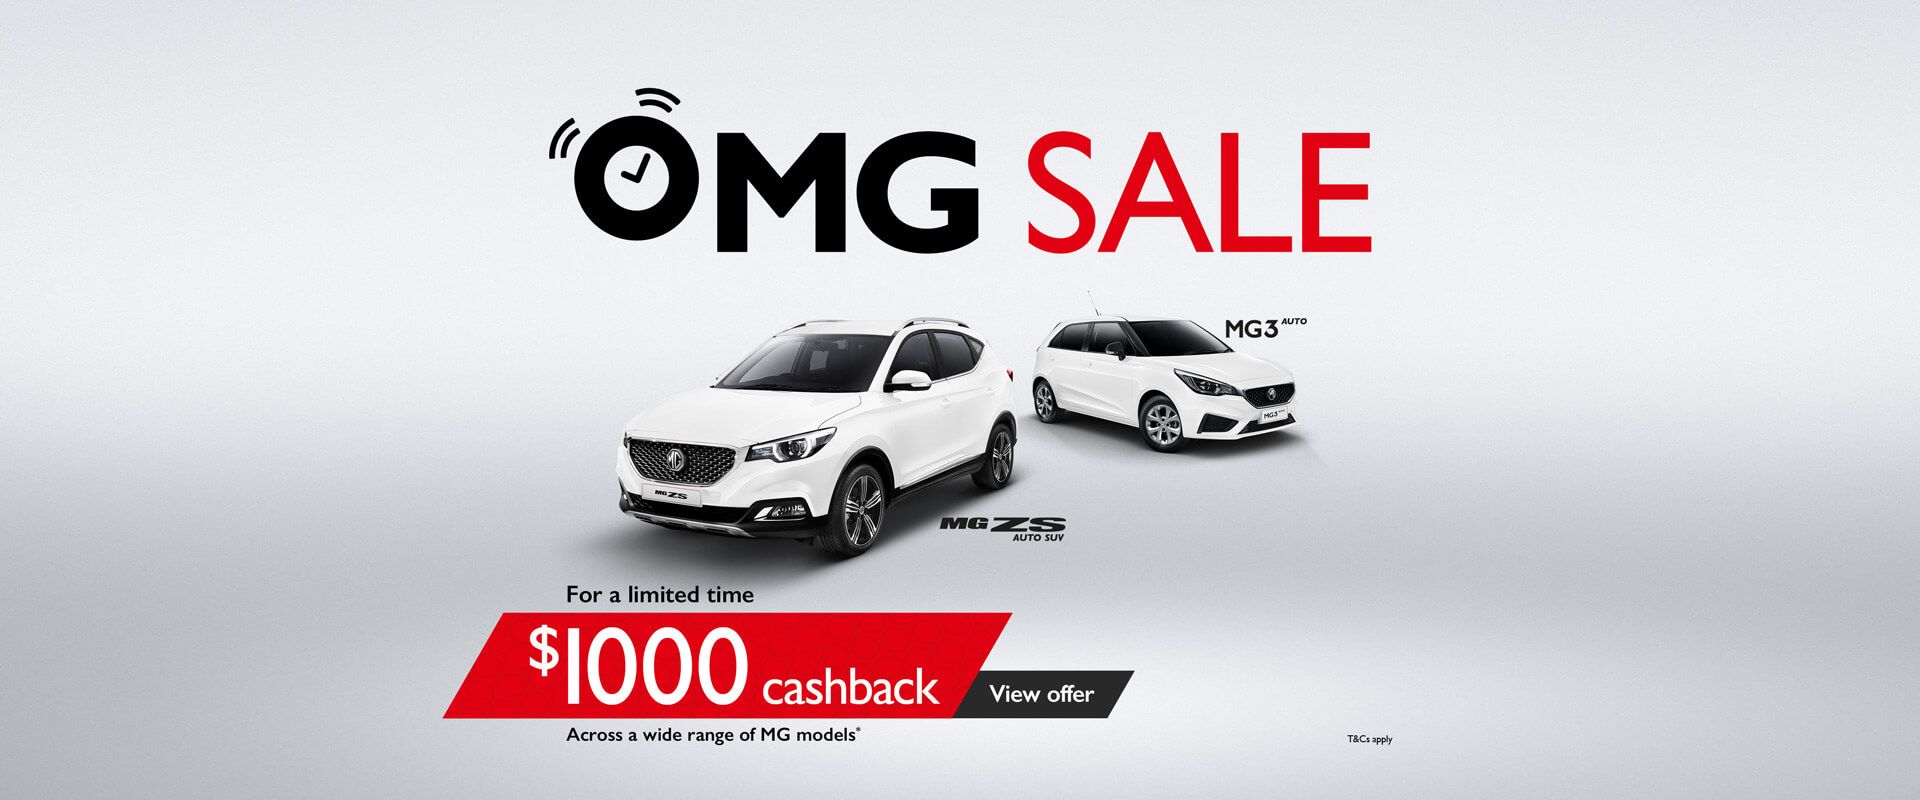 MG OMG Sale $1000 Cashback for a limited time